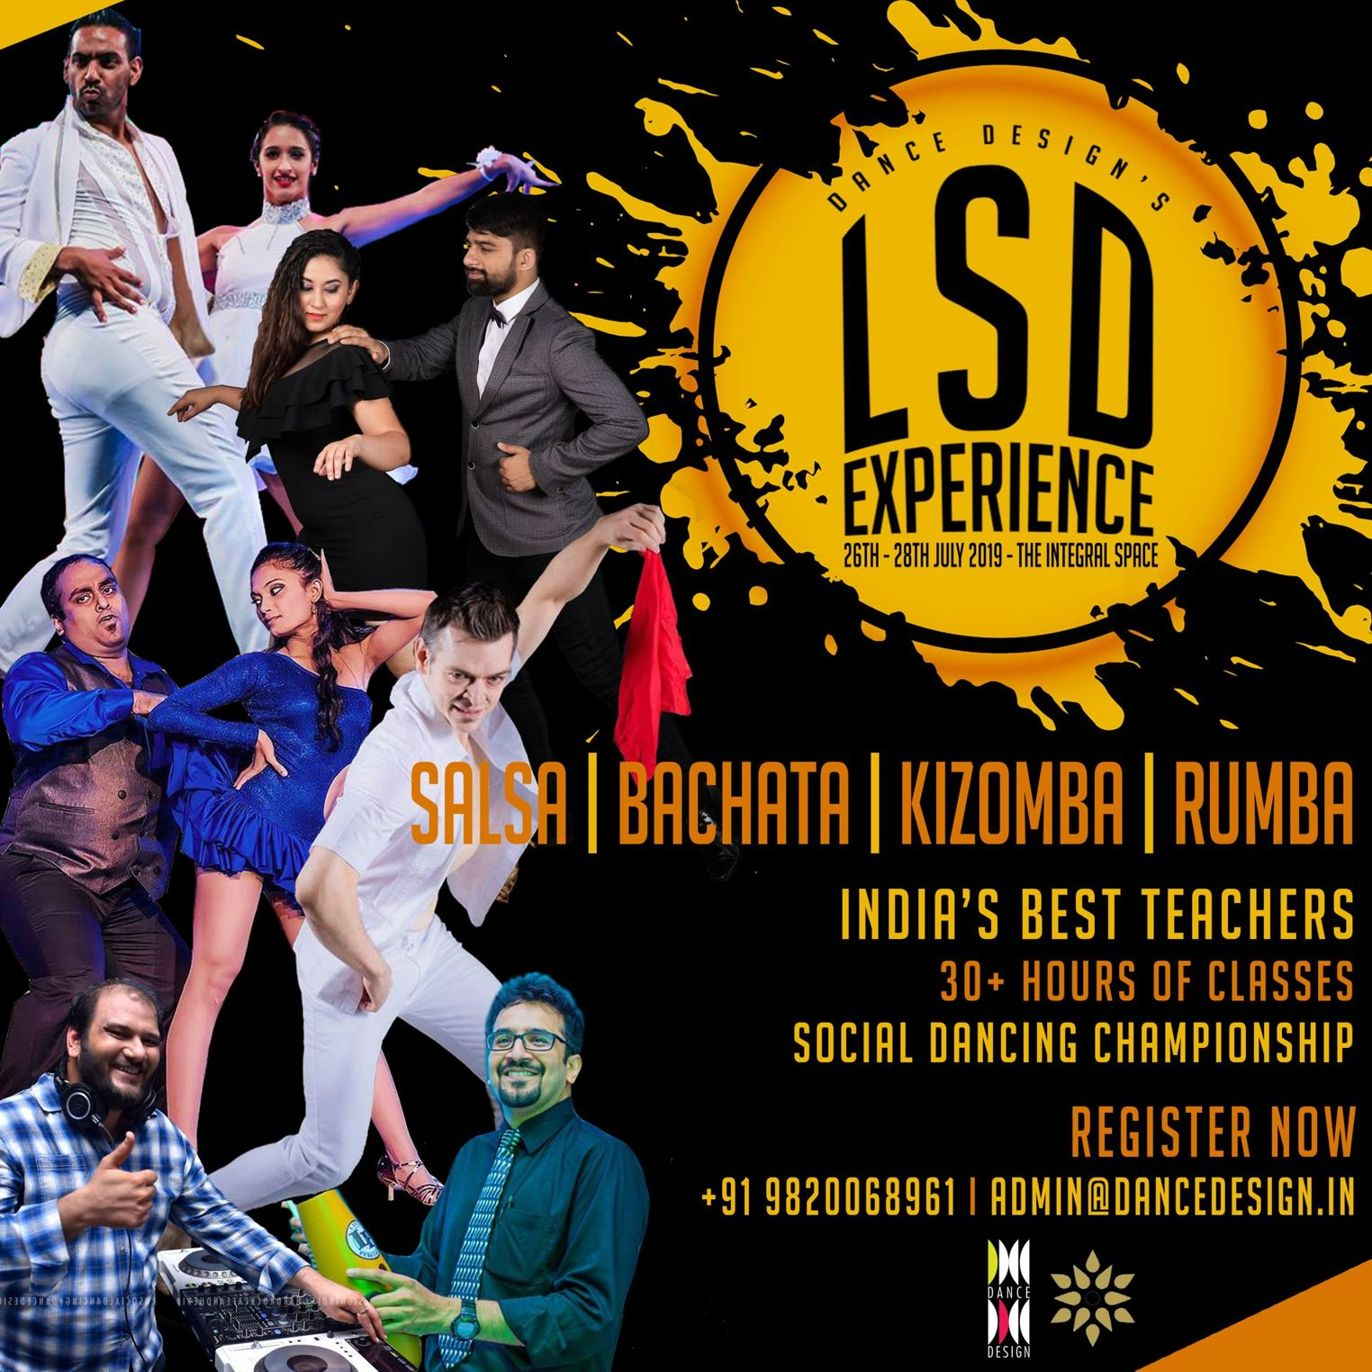 Dance Design Learn Social Dancing LSD Experiene 2019 Mumbai - 26th 28th May 2019 - Dance With Me India